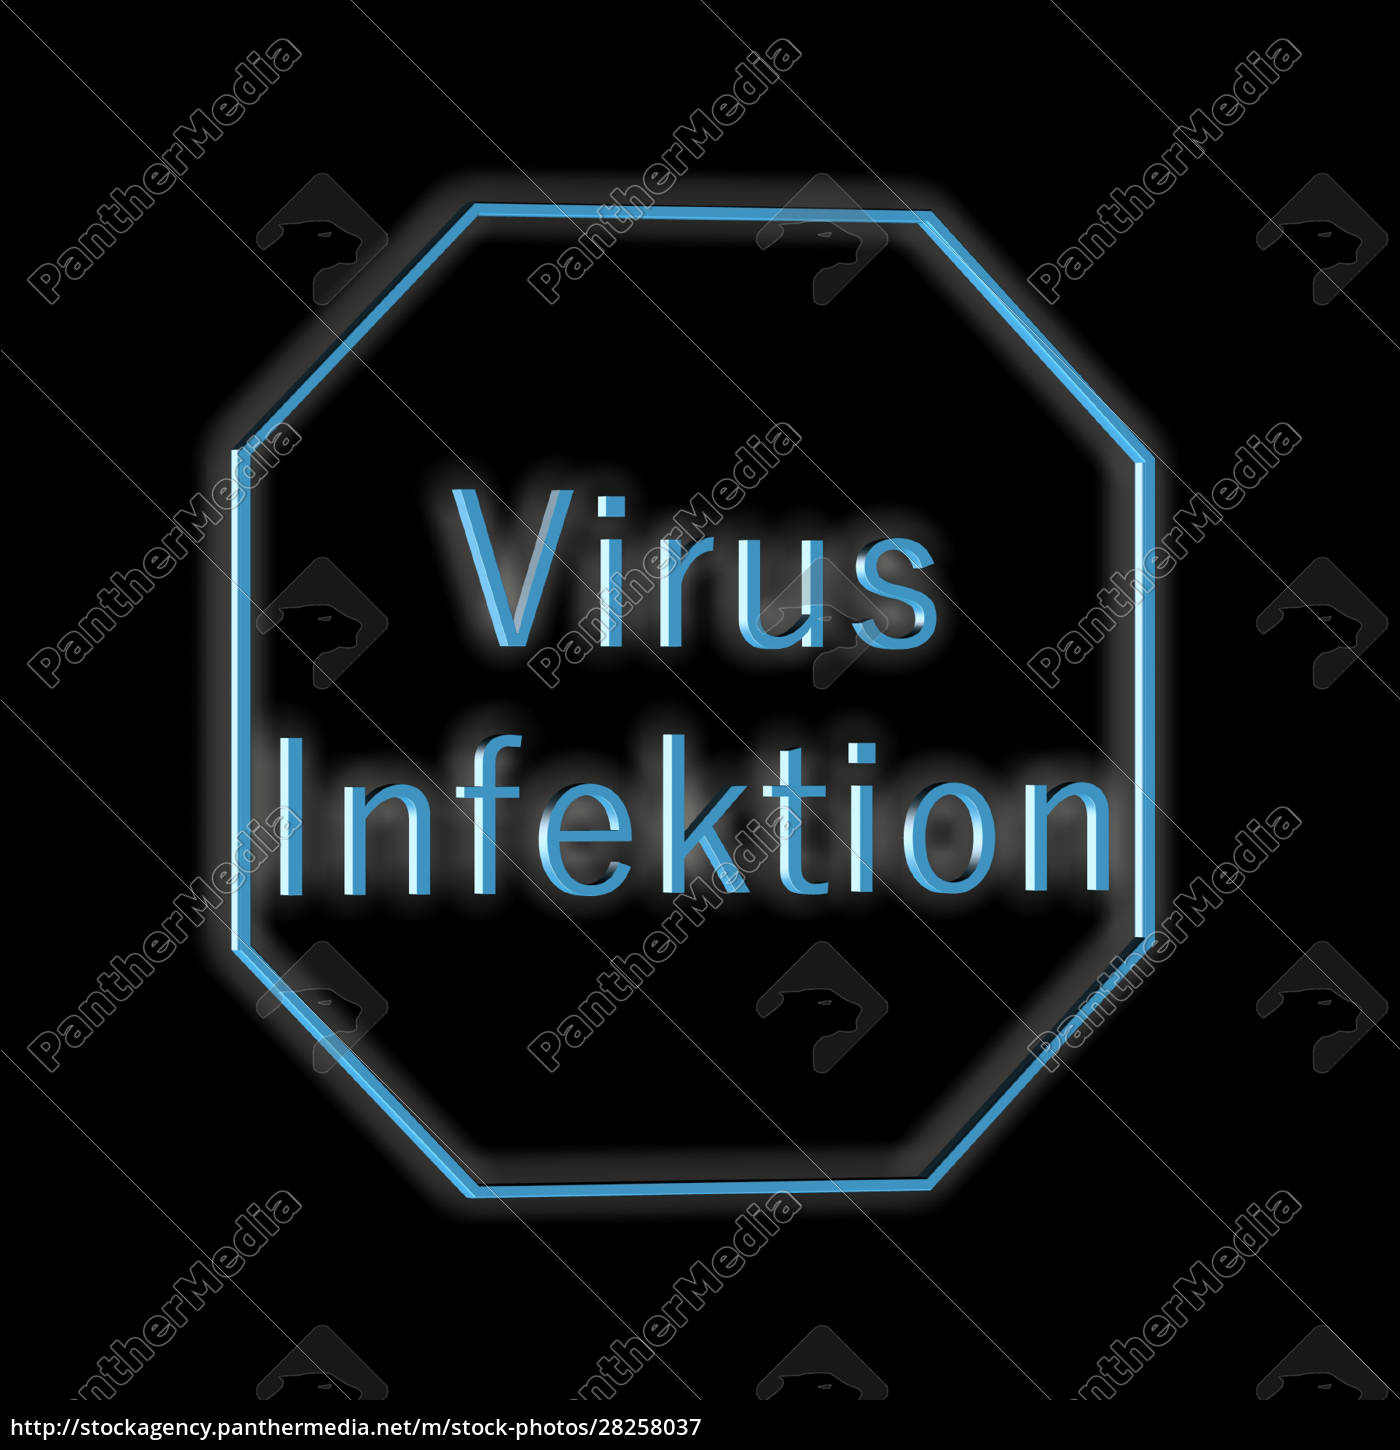 viral, infection, -, word, or, text - 28258037